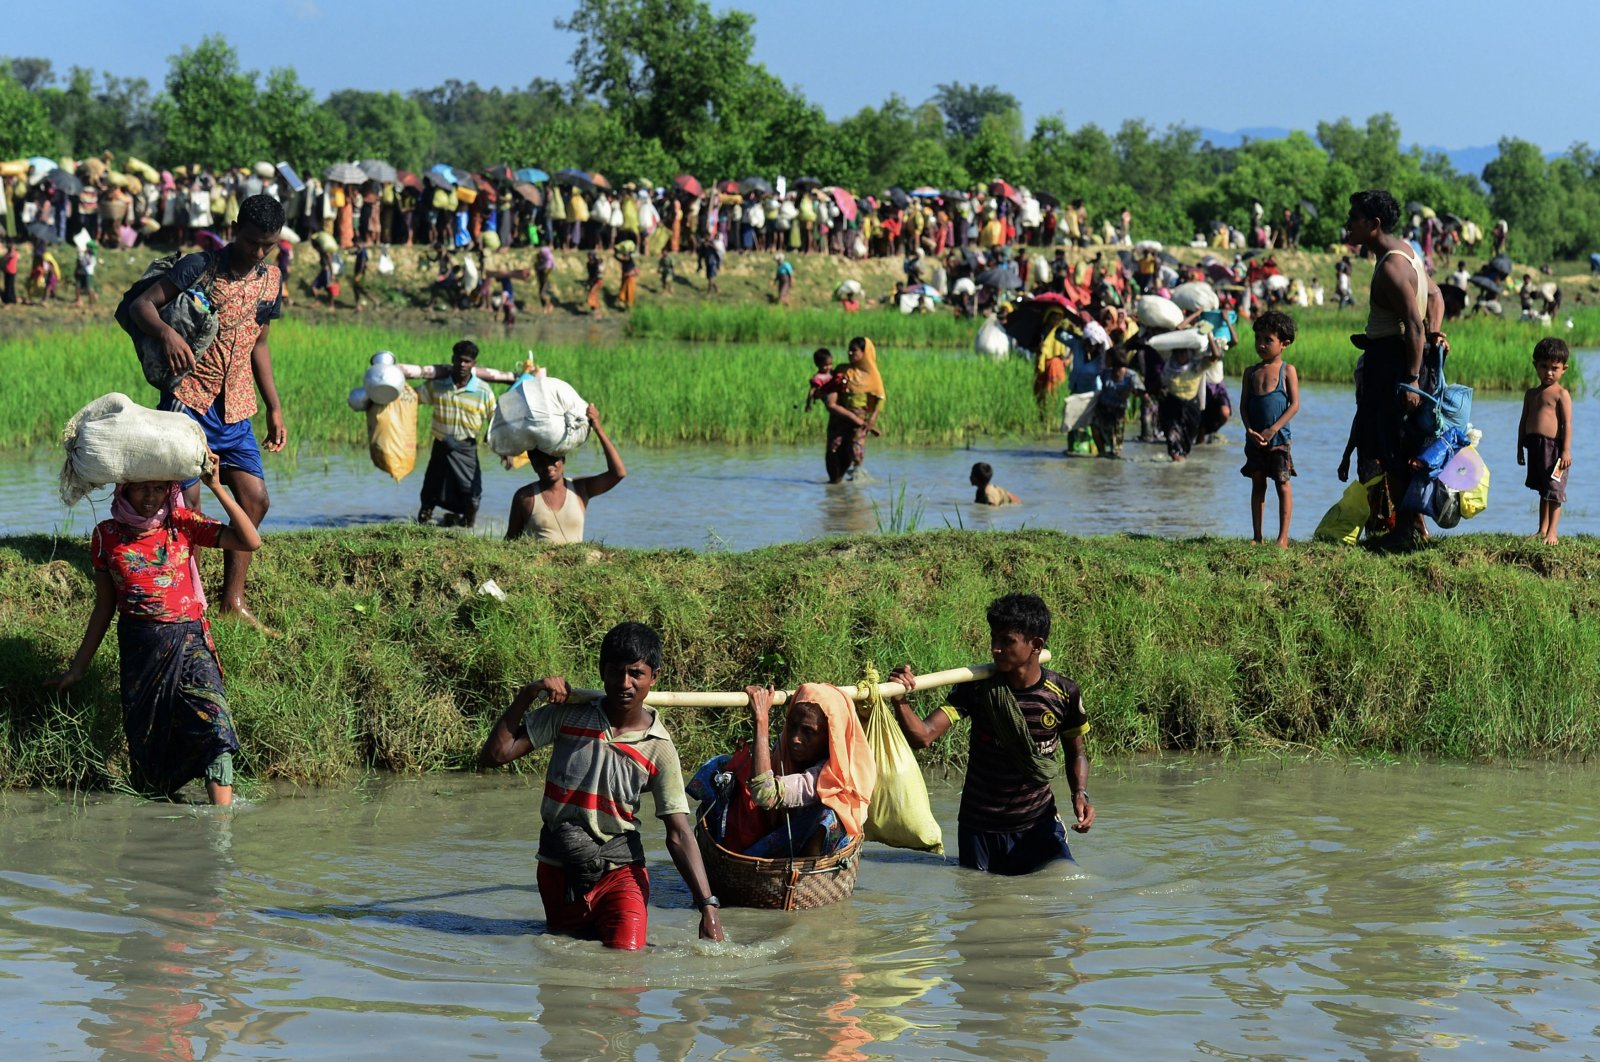 Rohingya refugees carry a woman over a shallow canal after crossing the Naf River as they flee violence in Myanmar to reach Bangladesh in Palongkhali near Ukhia, Oct. 16, 2017. (AFP Photo)